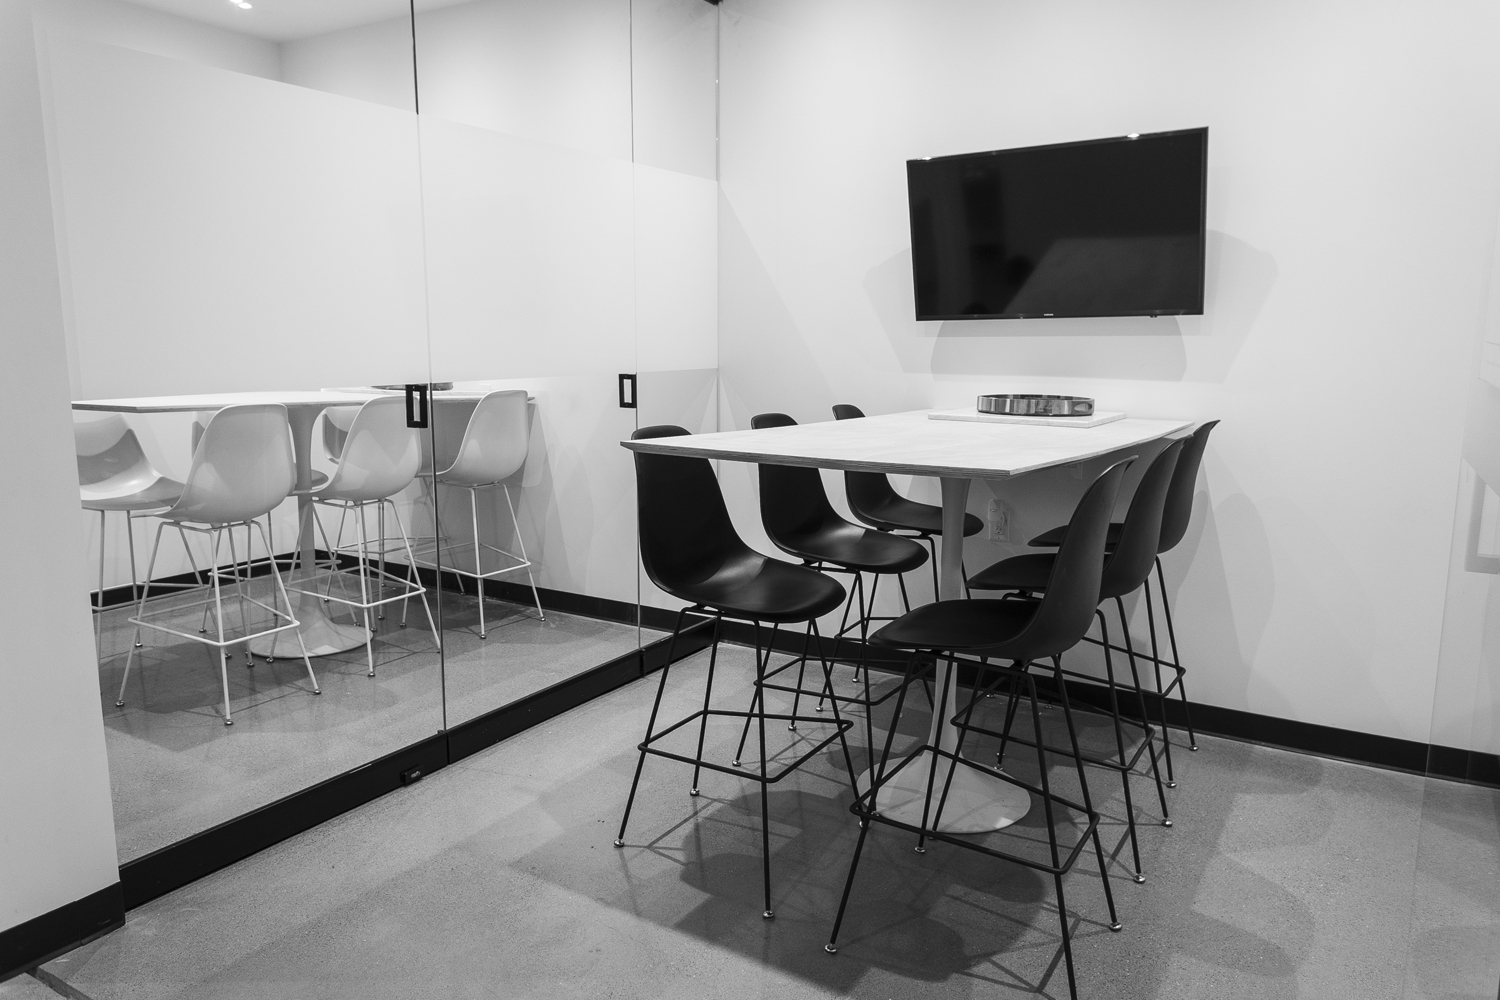 neu.works-conference-room-small-meeting-room-for-rent-4-bw.jpg